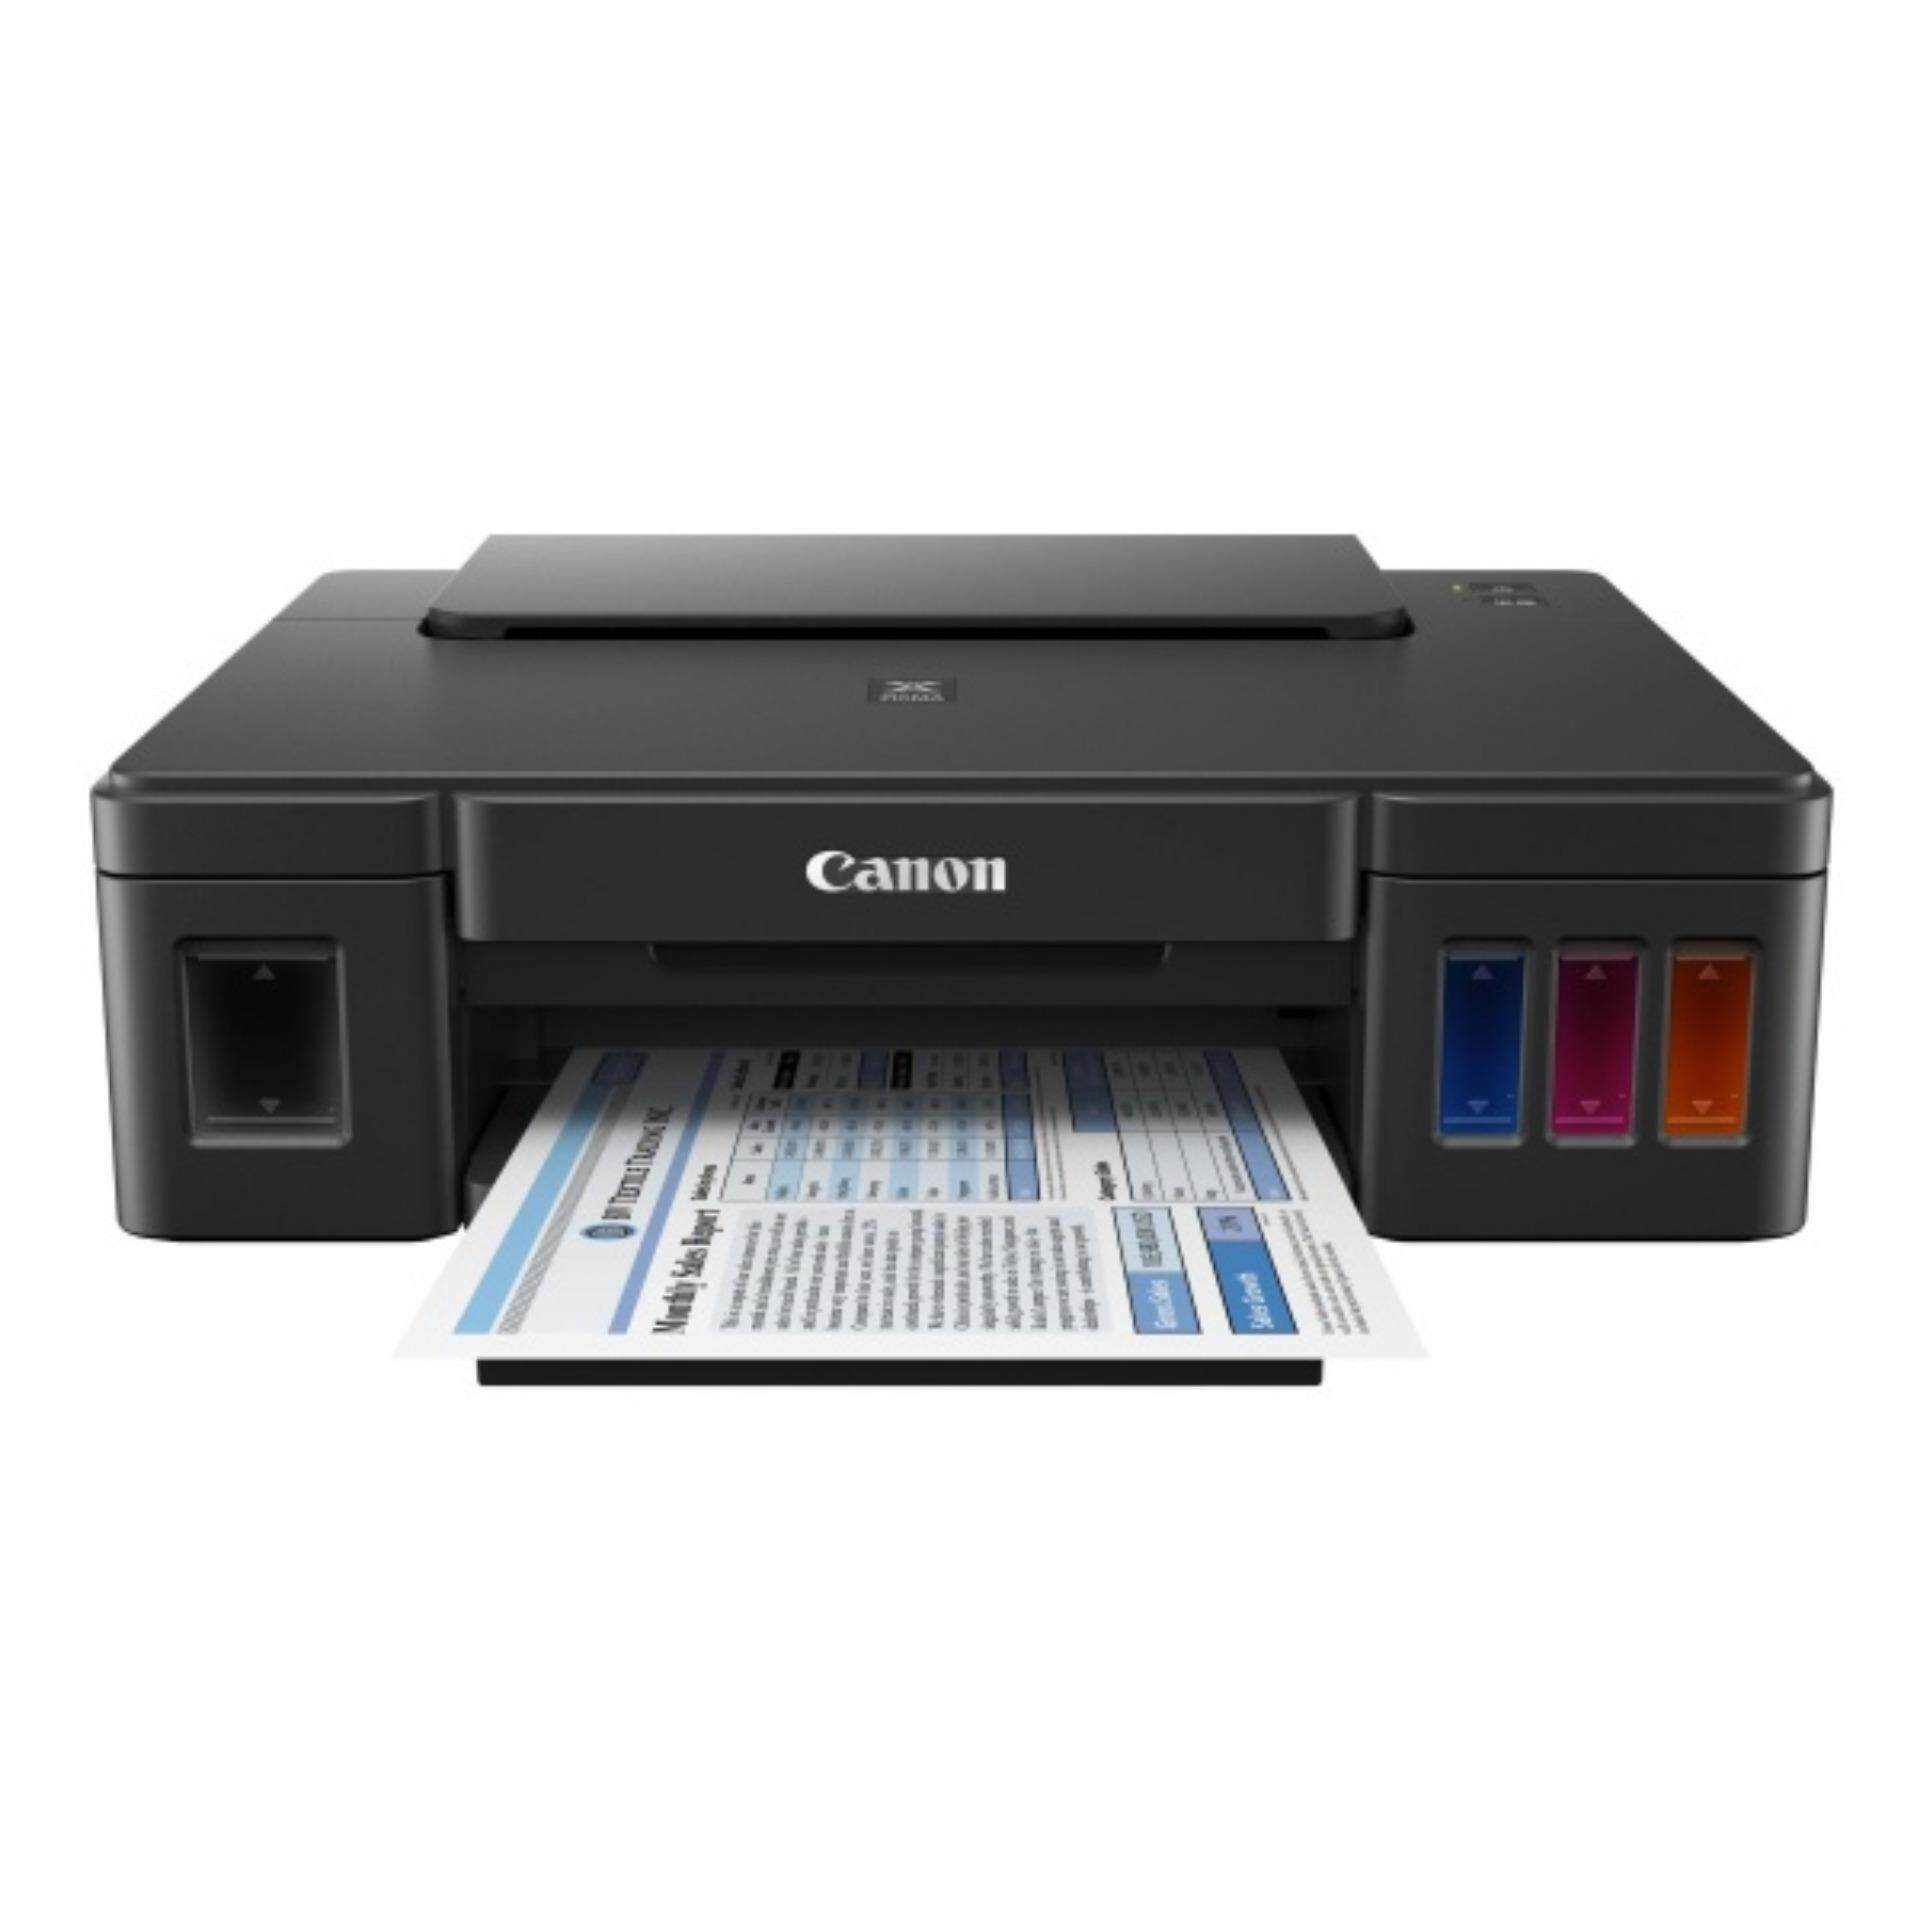 Canon PIXMA G1010 Refillable Ink Tank Printer MODEL PRINT